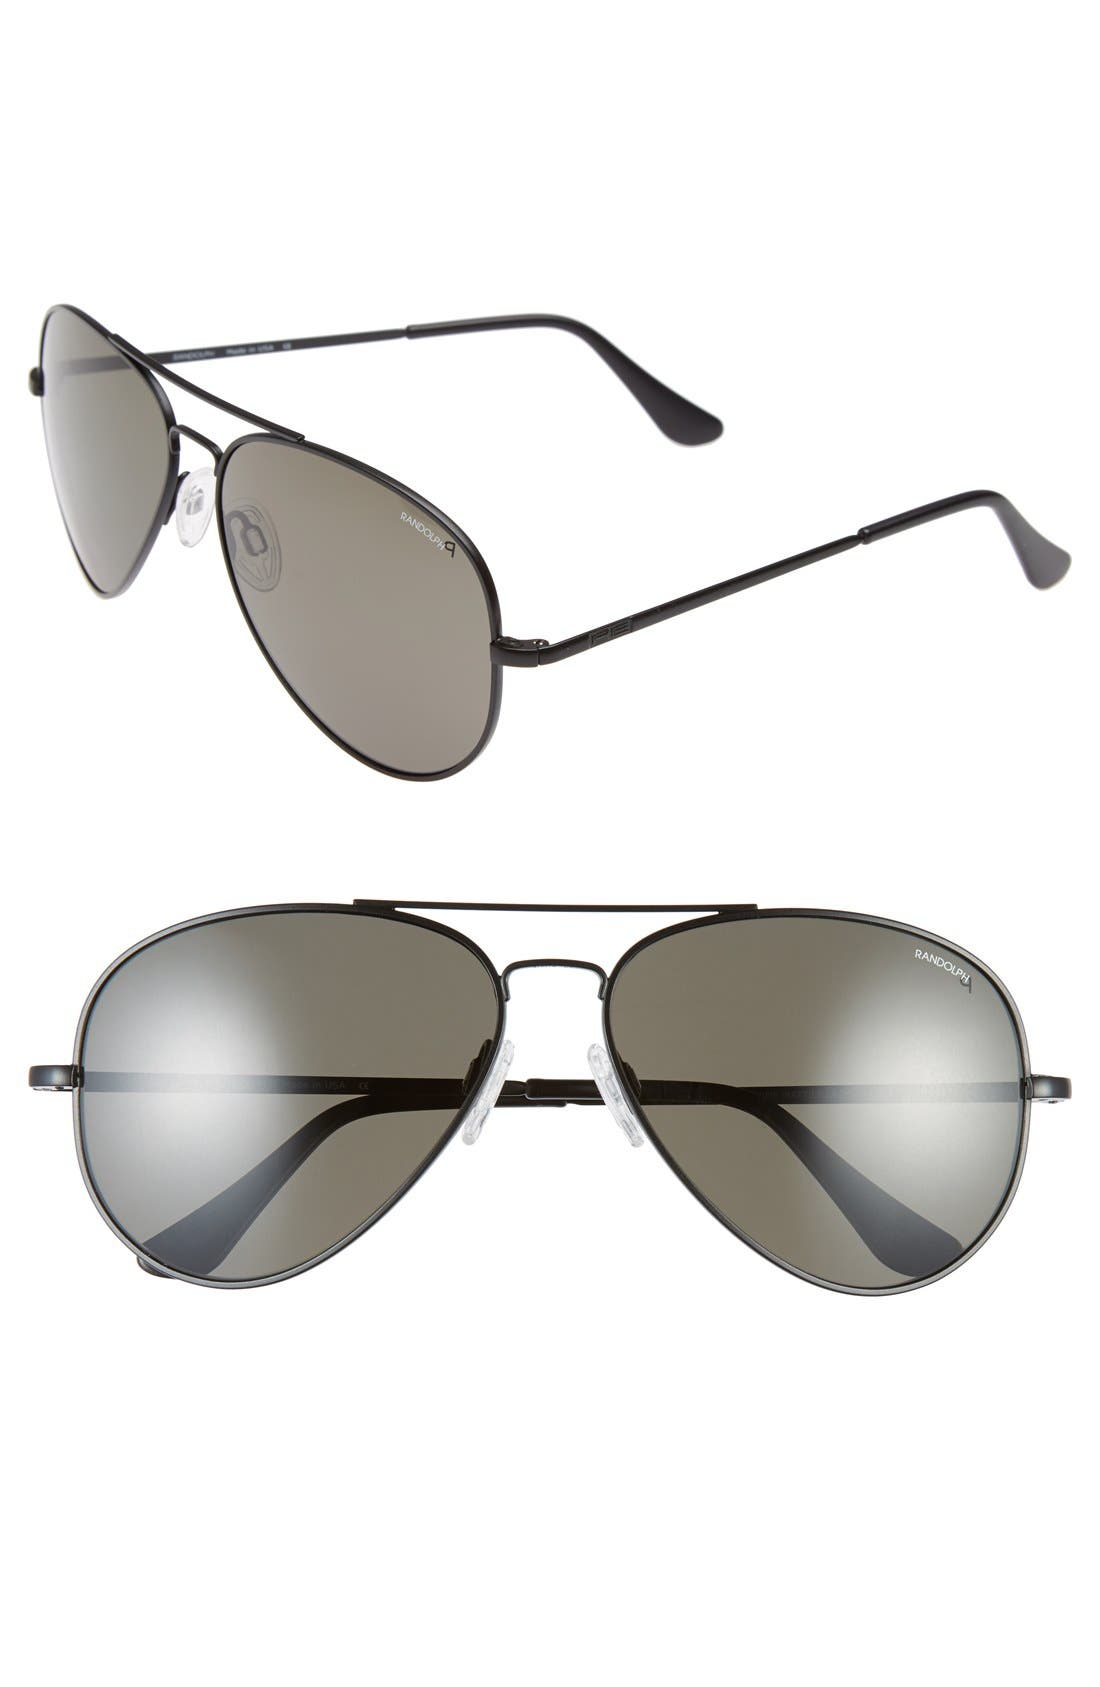 Main Image - Randolph Engineering 'Concorde' 61mm Aviator Sunglasses